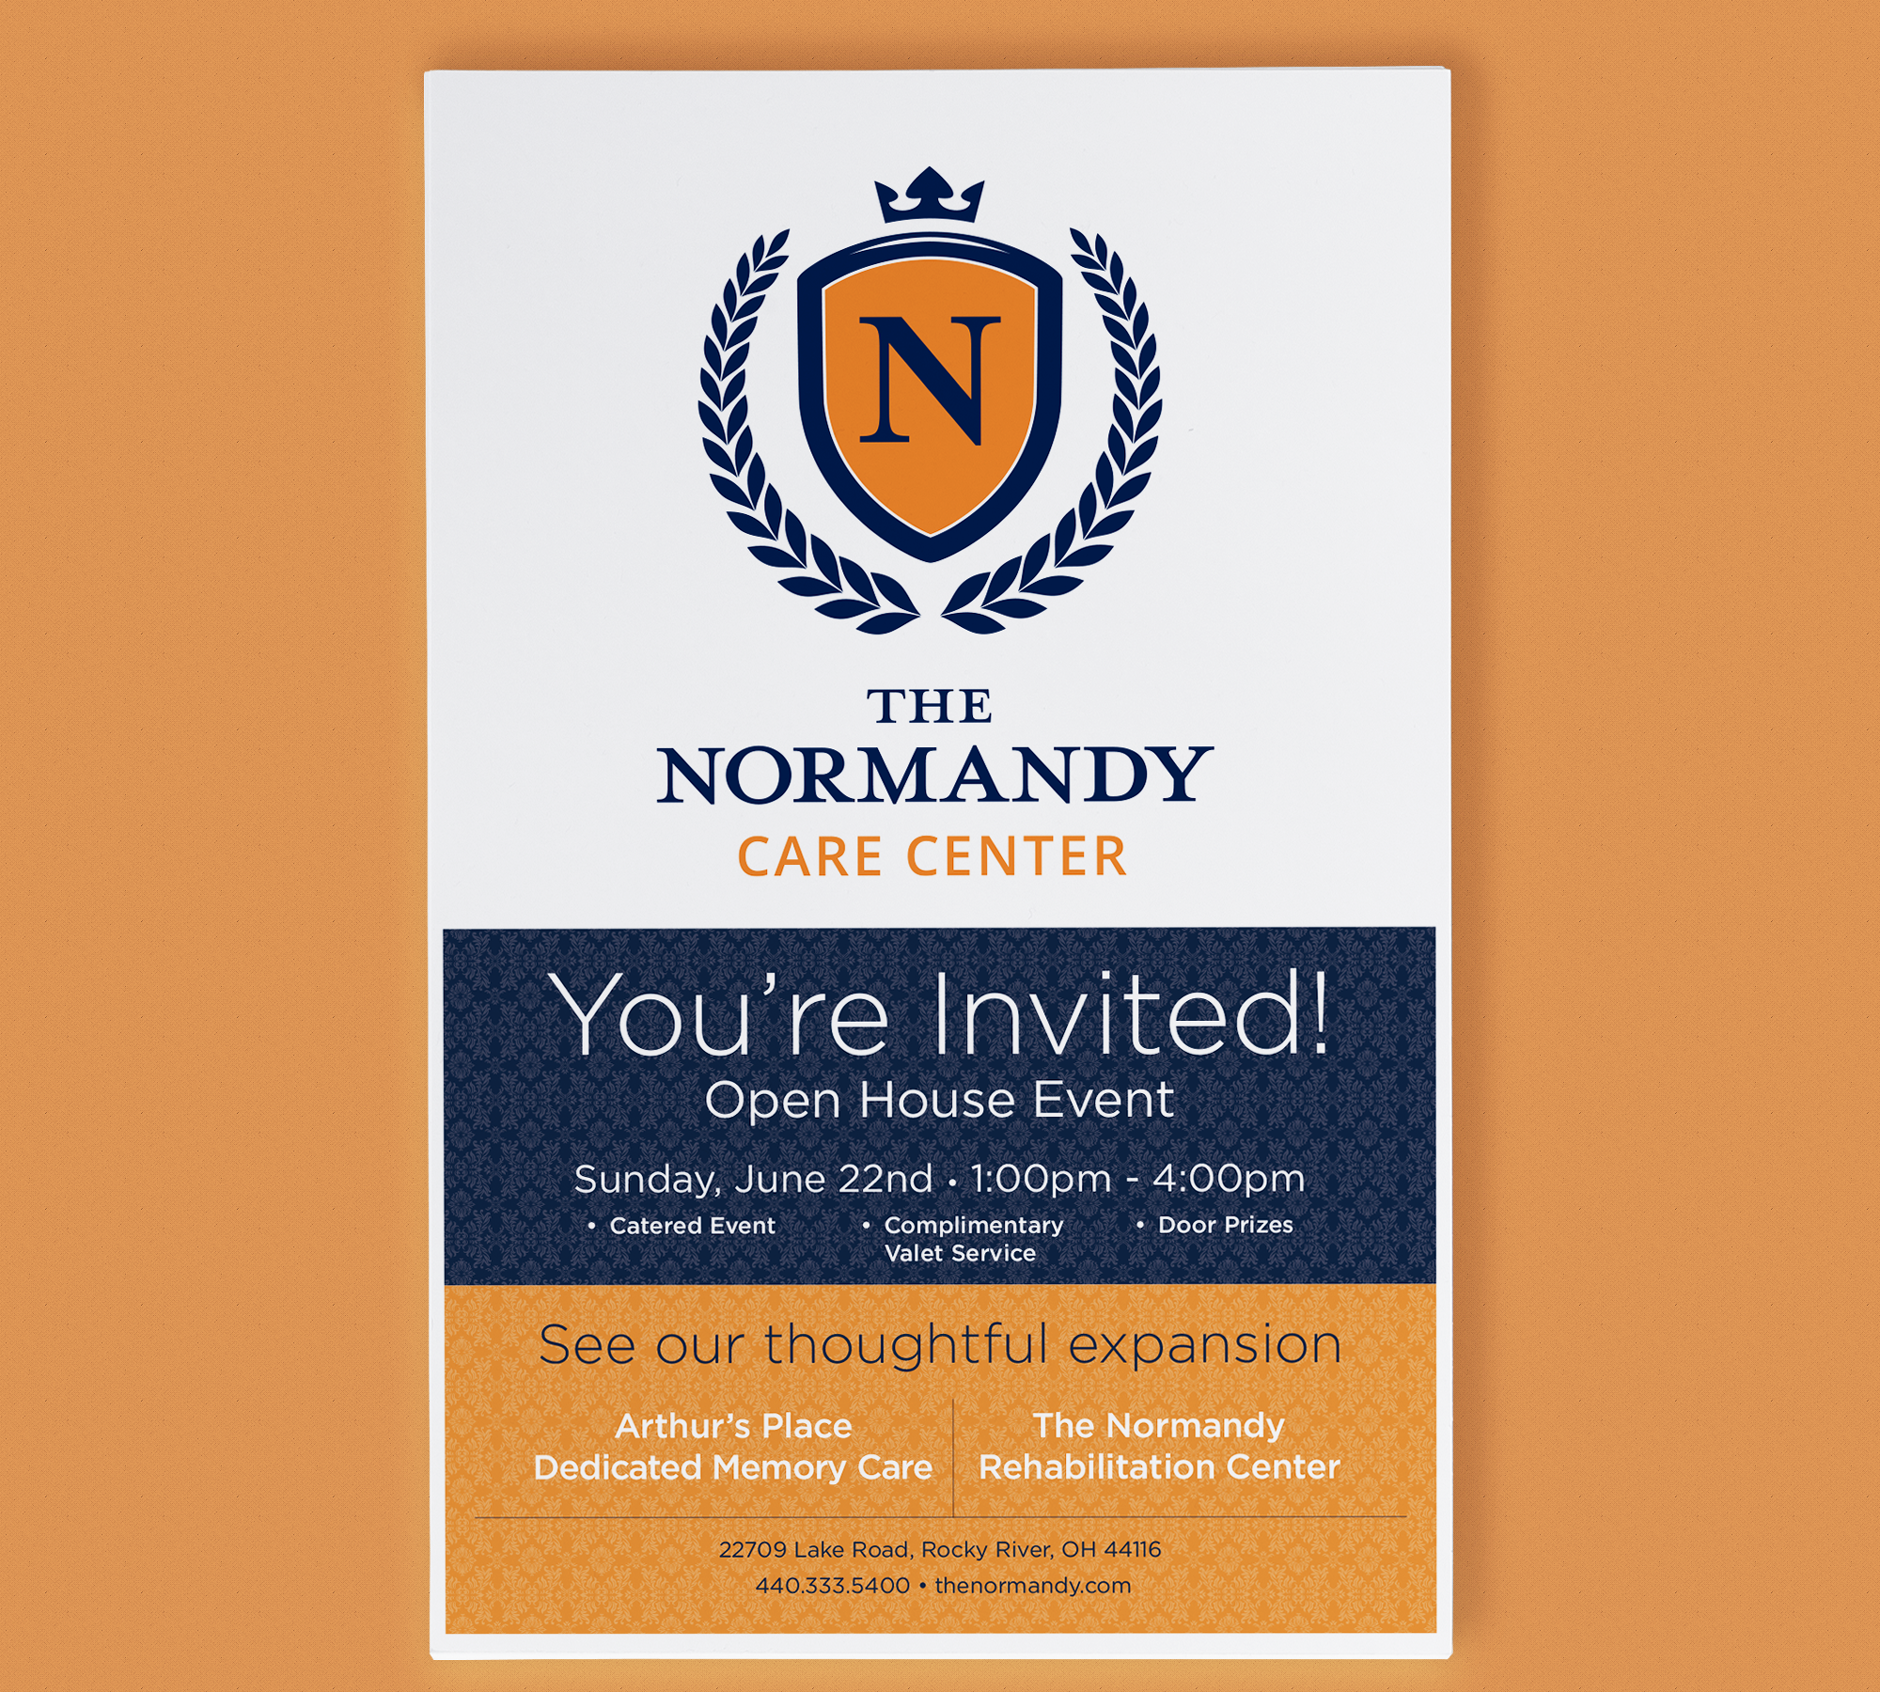 The Normandy Care Center Poster | Rebranding Agency